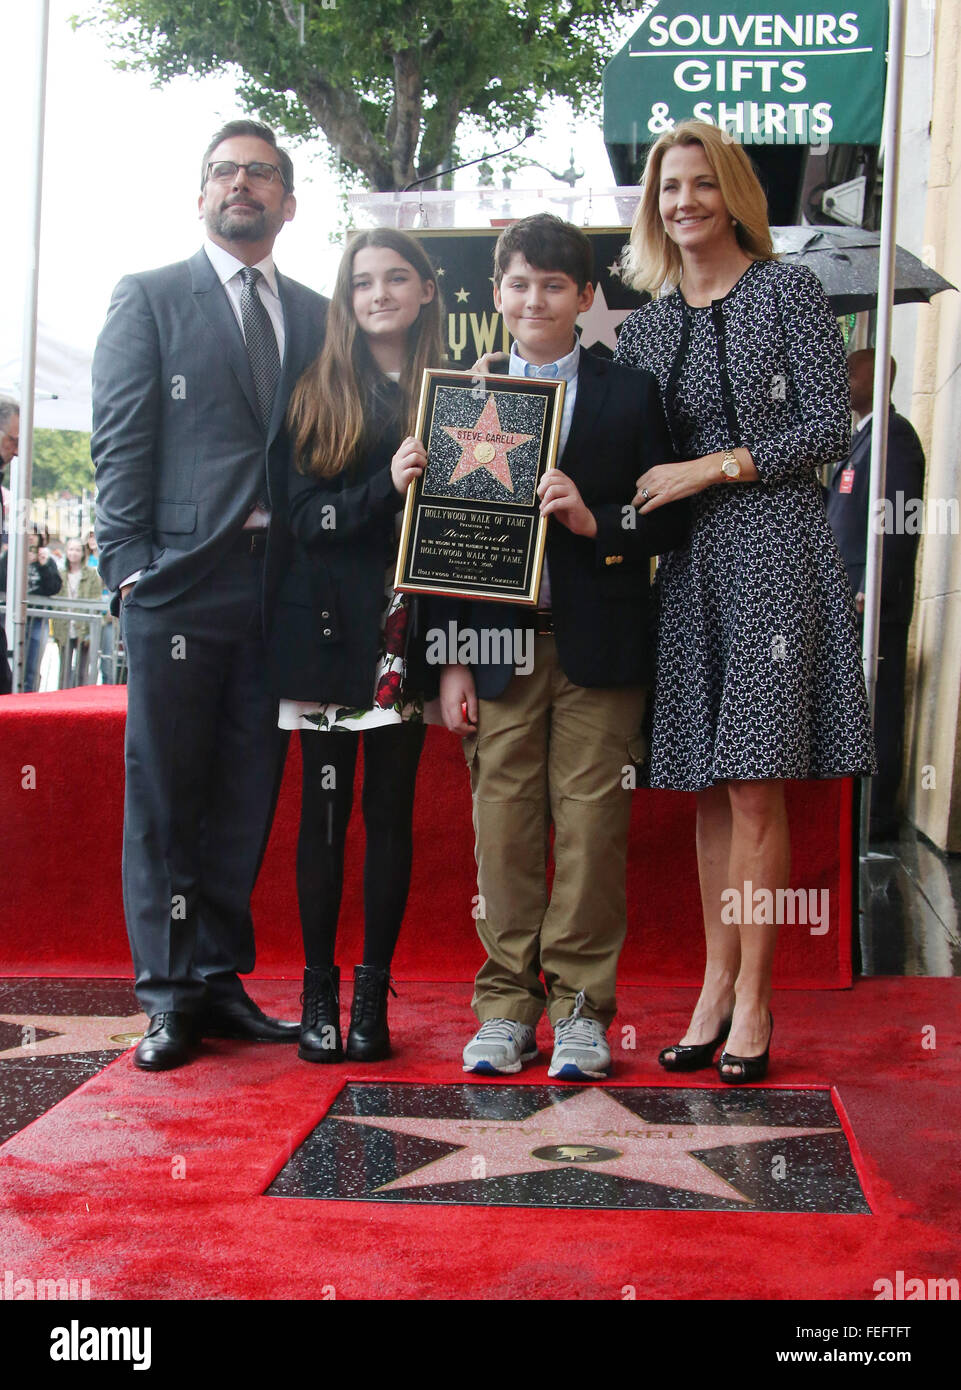 Elisabeth Anne Carell High Resolution Stock Photography And Images Alamy She is an active, independent filmmaker and live performer. https www alamy com stock photo steve carell honored with star on the hollywood walk of fame featuring 95005564 html